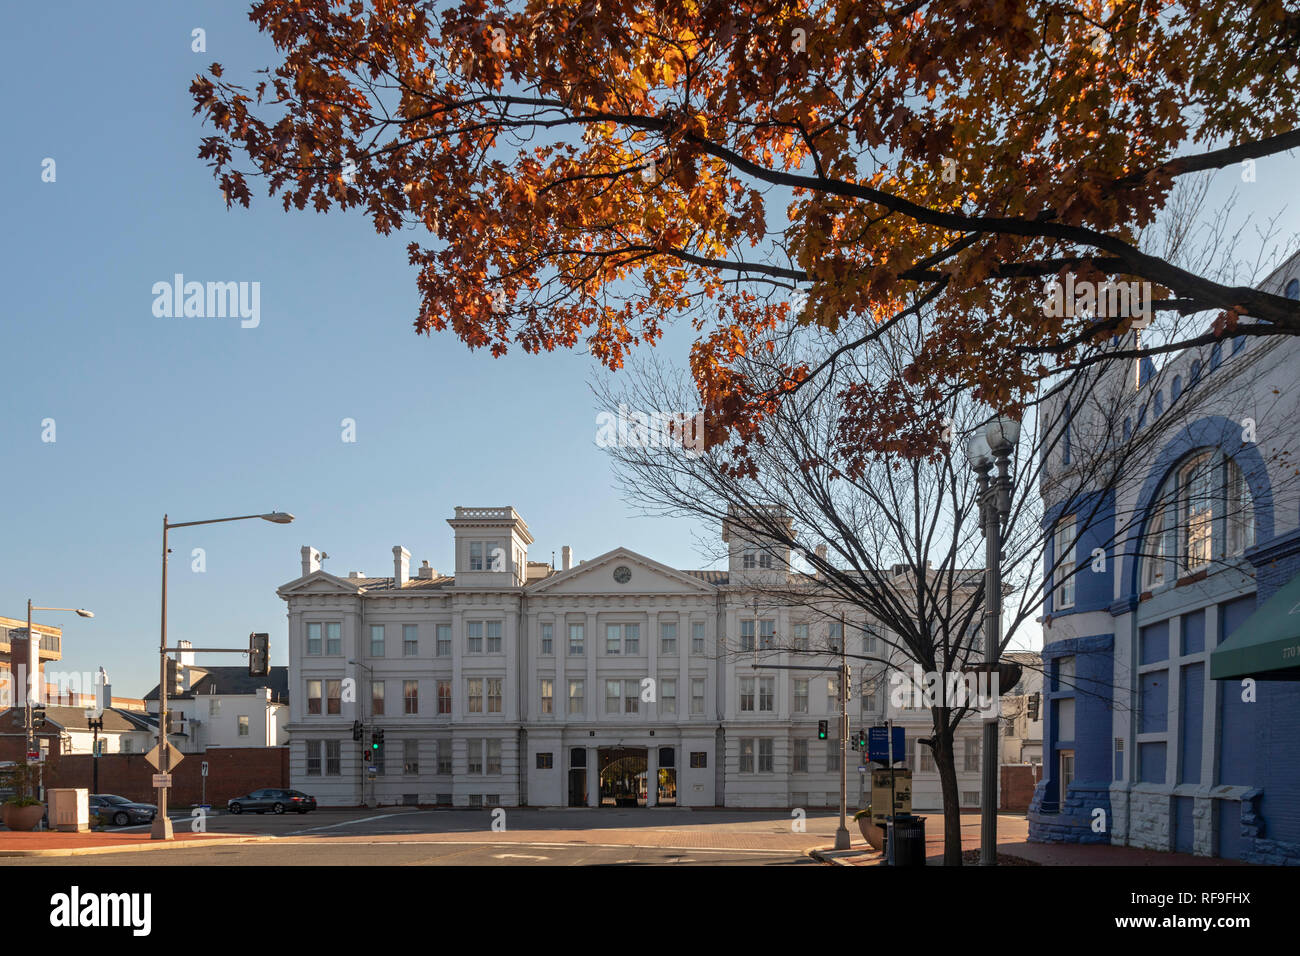 Washington, DC - The main gate of the Washington Navy Yard. Stock Photo